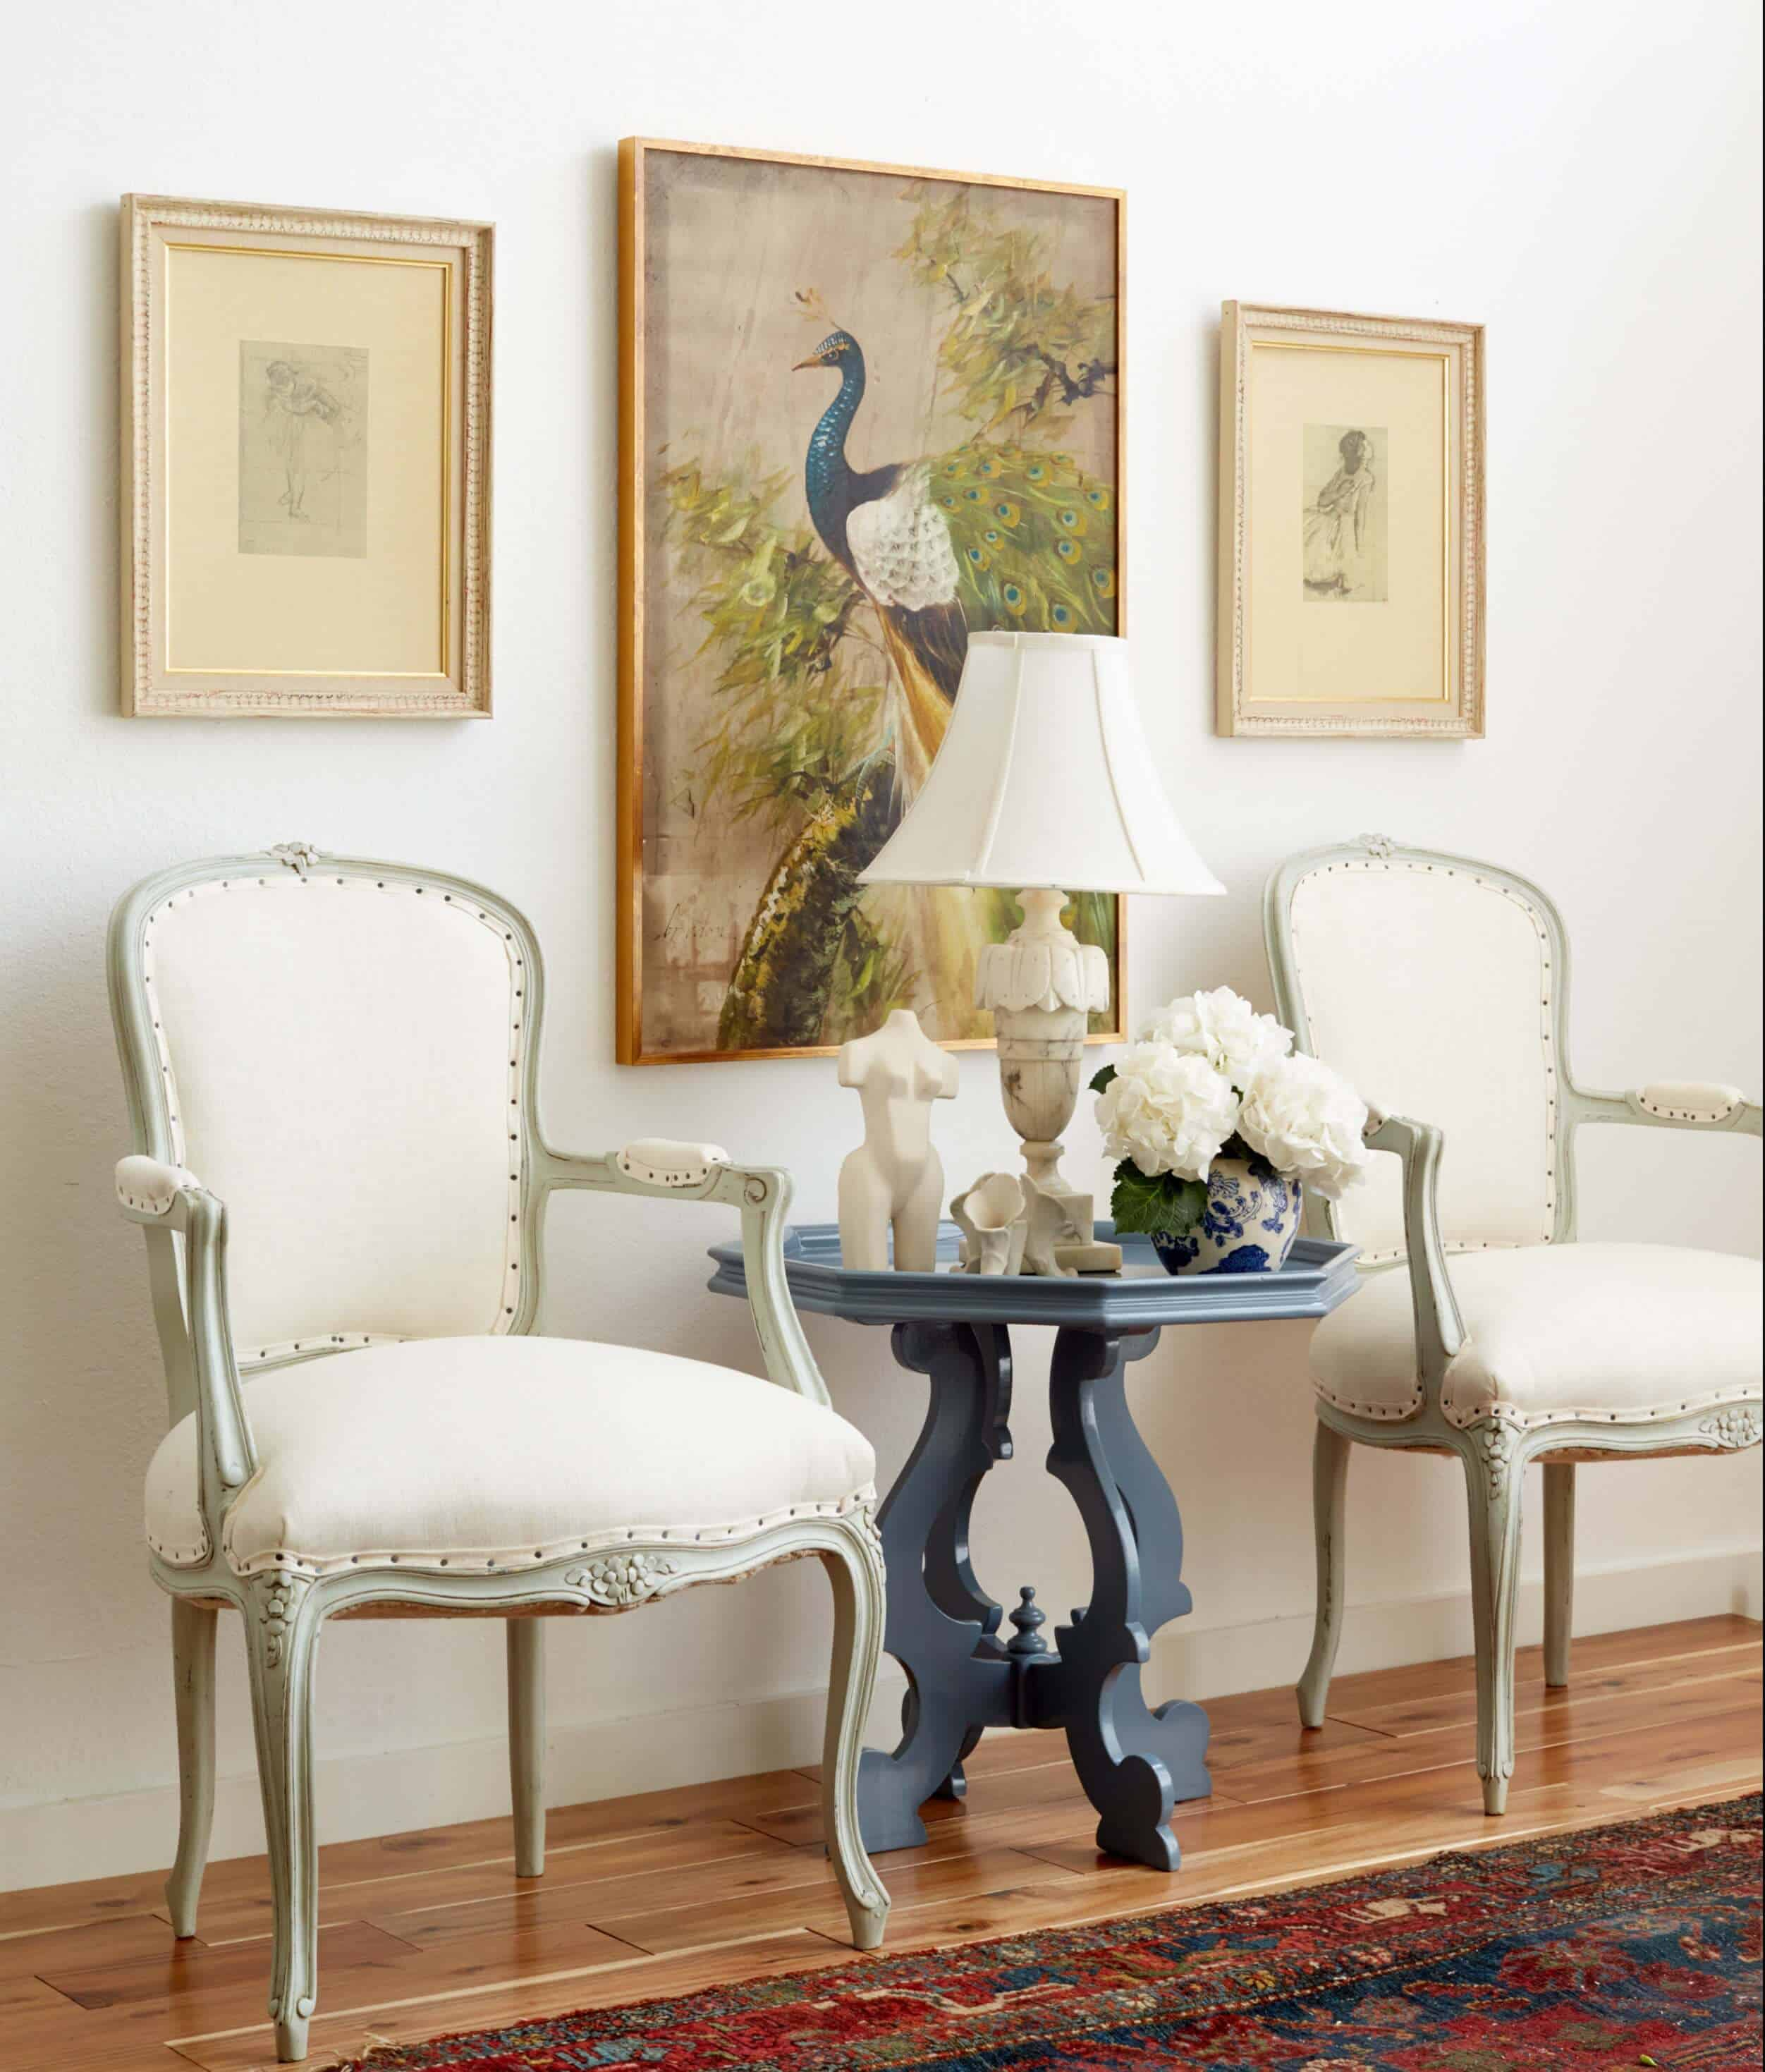 Emily Henderson_Target_Find Your Style_Vignette_Traditional_Classic_Ornate_Sophisticated_Orderly_Pics_2